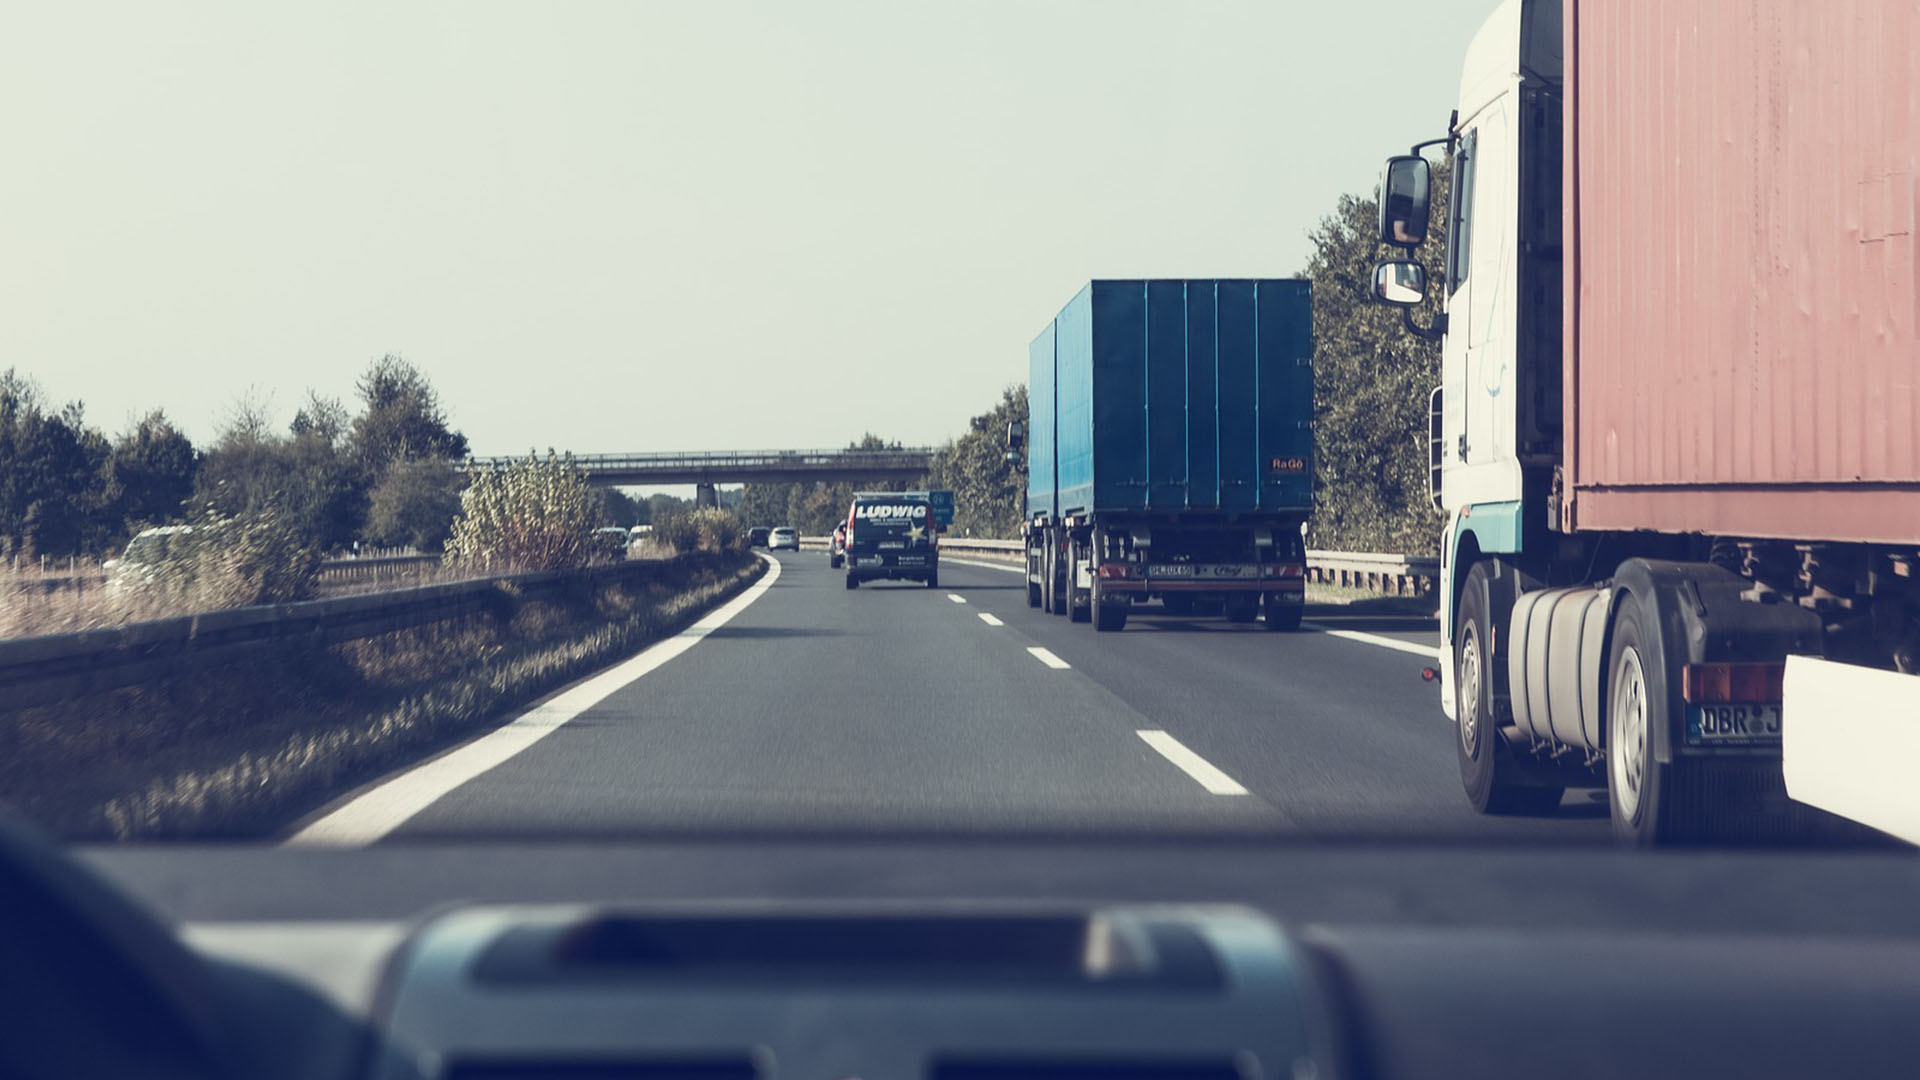 view of trucks driving on highway from inside of a vehicle